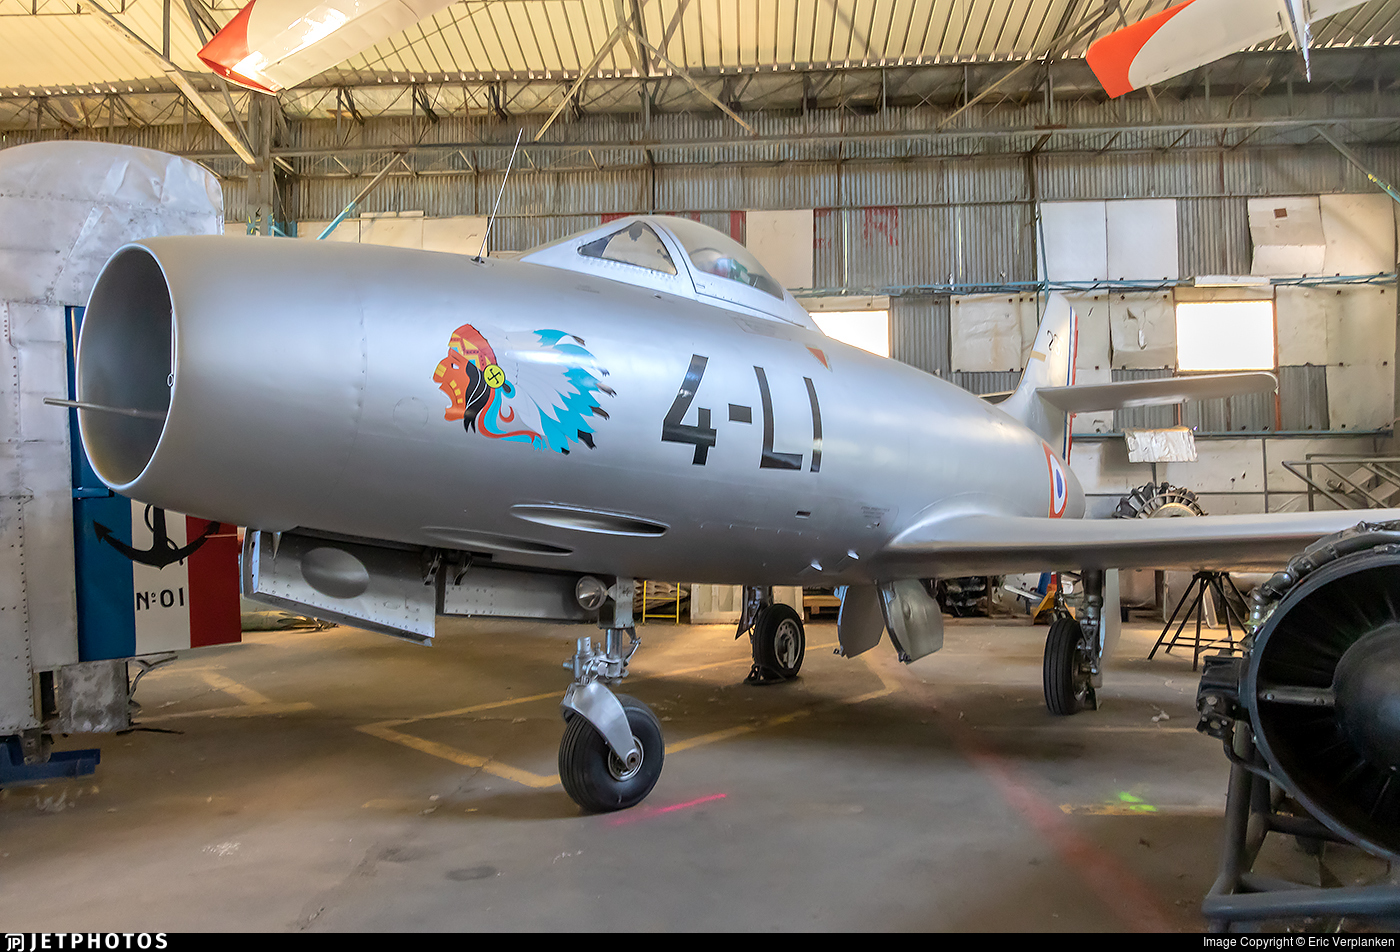 297 - Dassault MD.450 Ouragan - France - Air Force